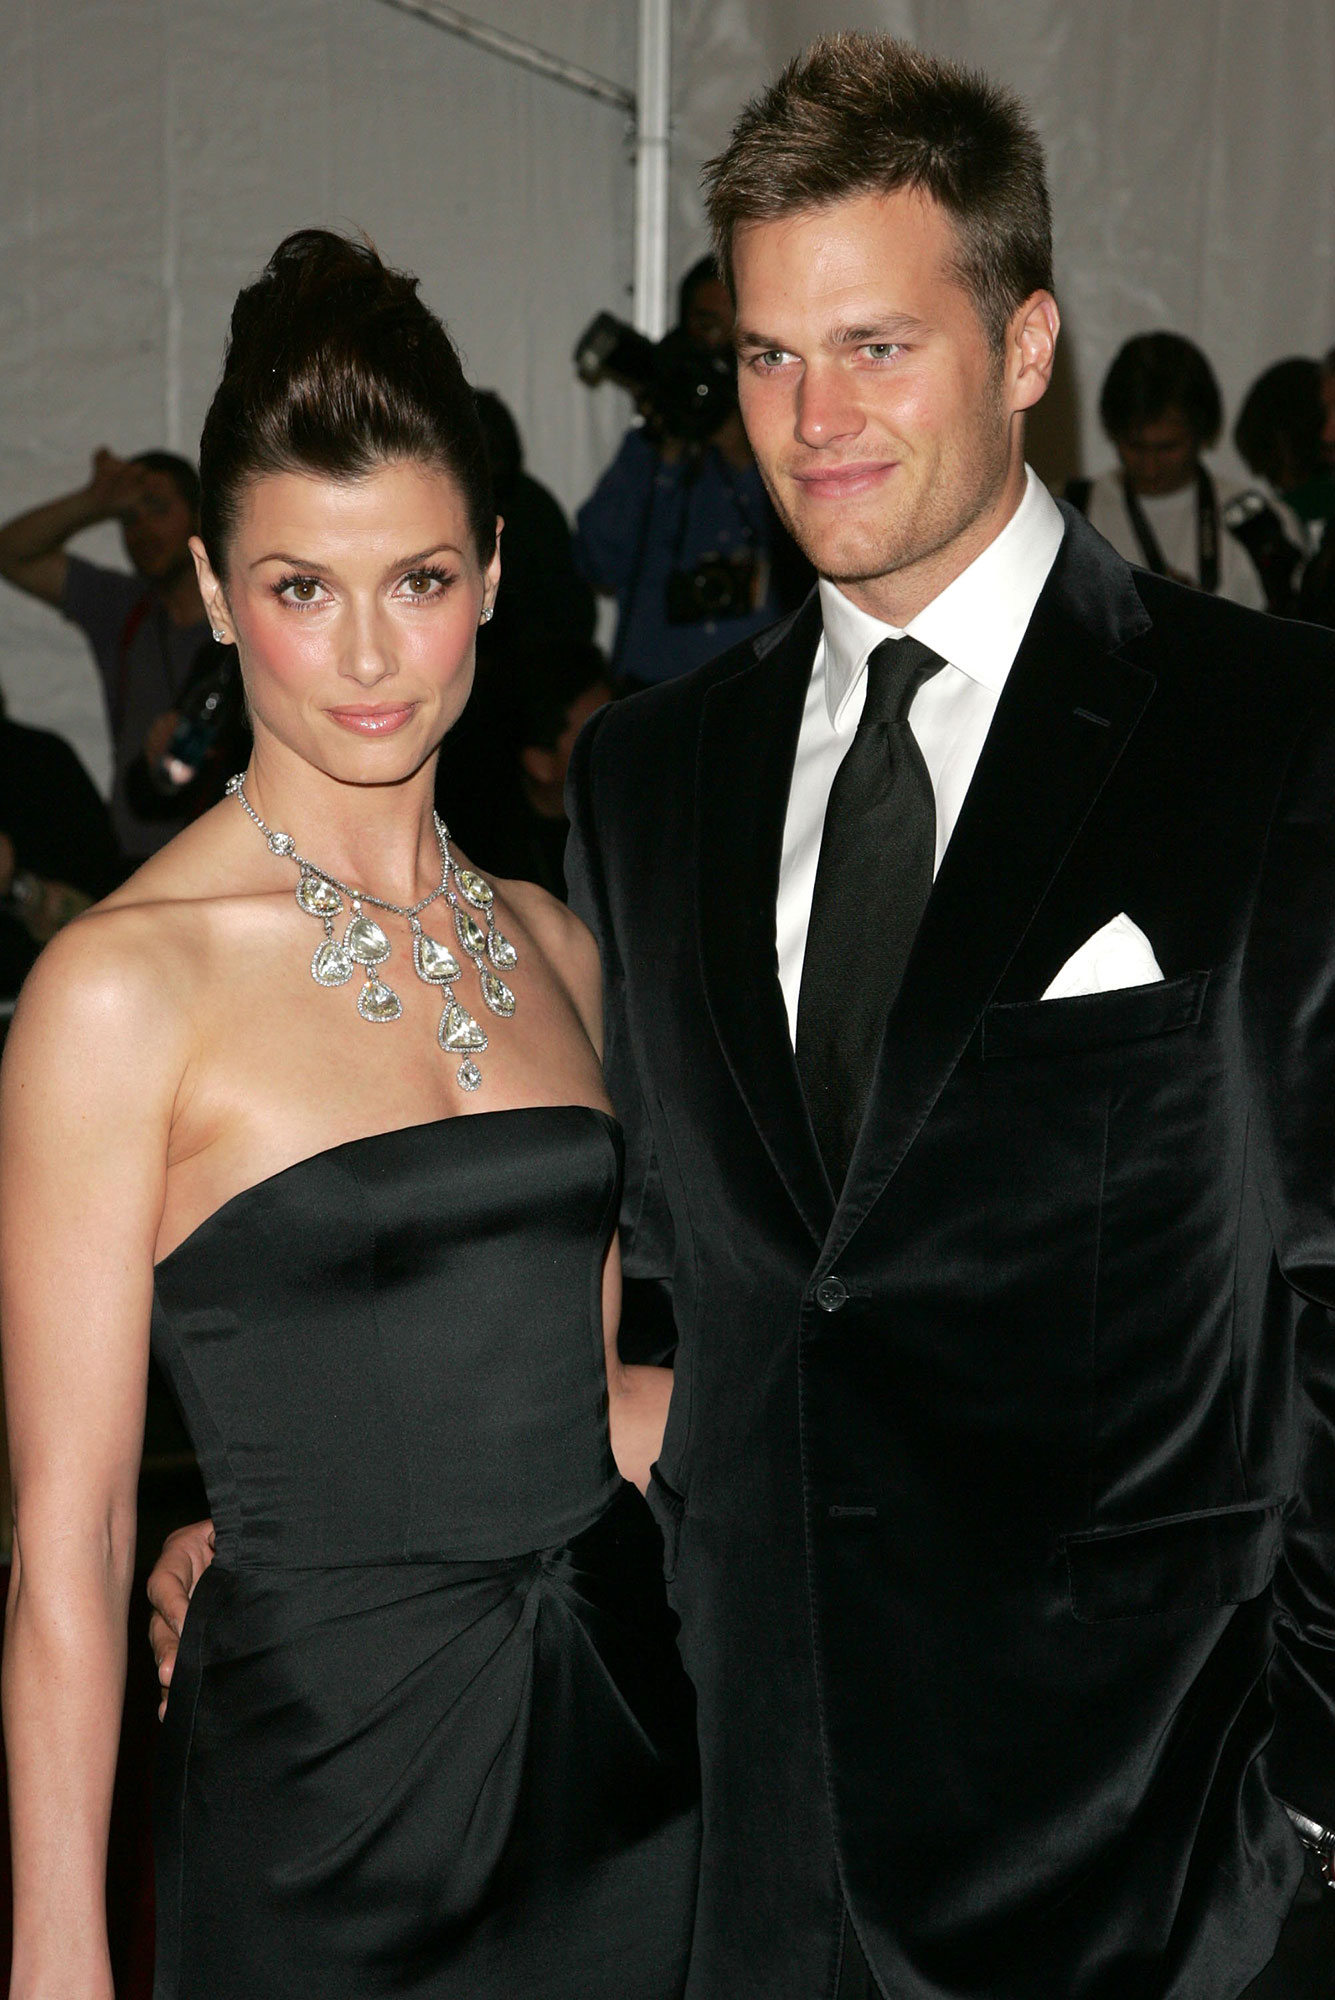 Look Back at Tom Brady and Bridget Moynahan's Rocky Relationship - After more than two years of dating, the duo called it quits in late 2006. Shortly after their split, the NFL quarterback started seeing Bündchen.